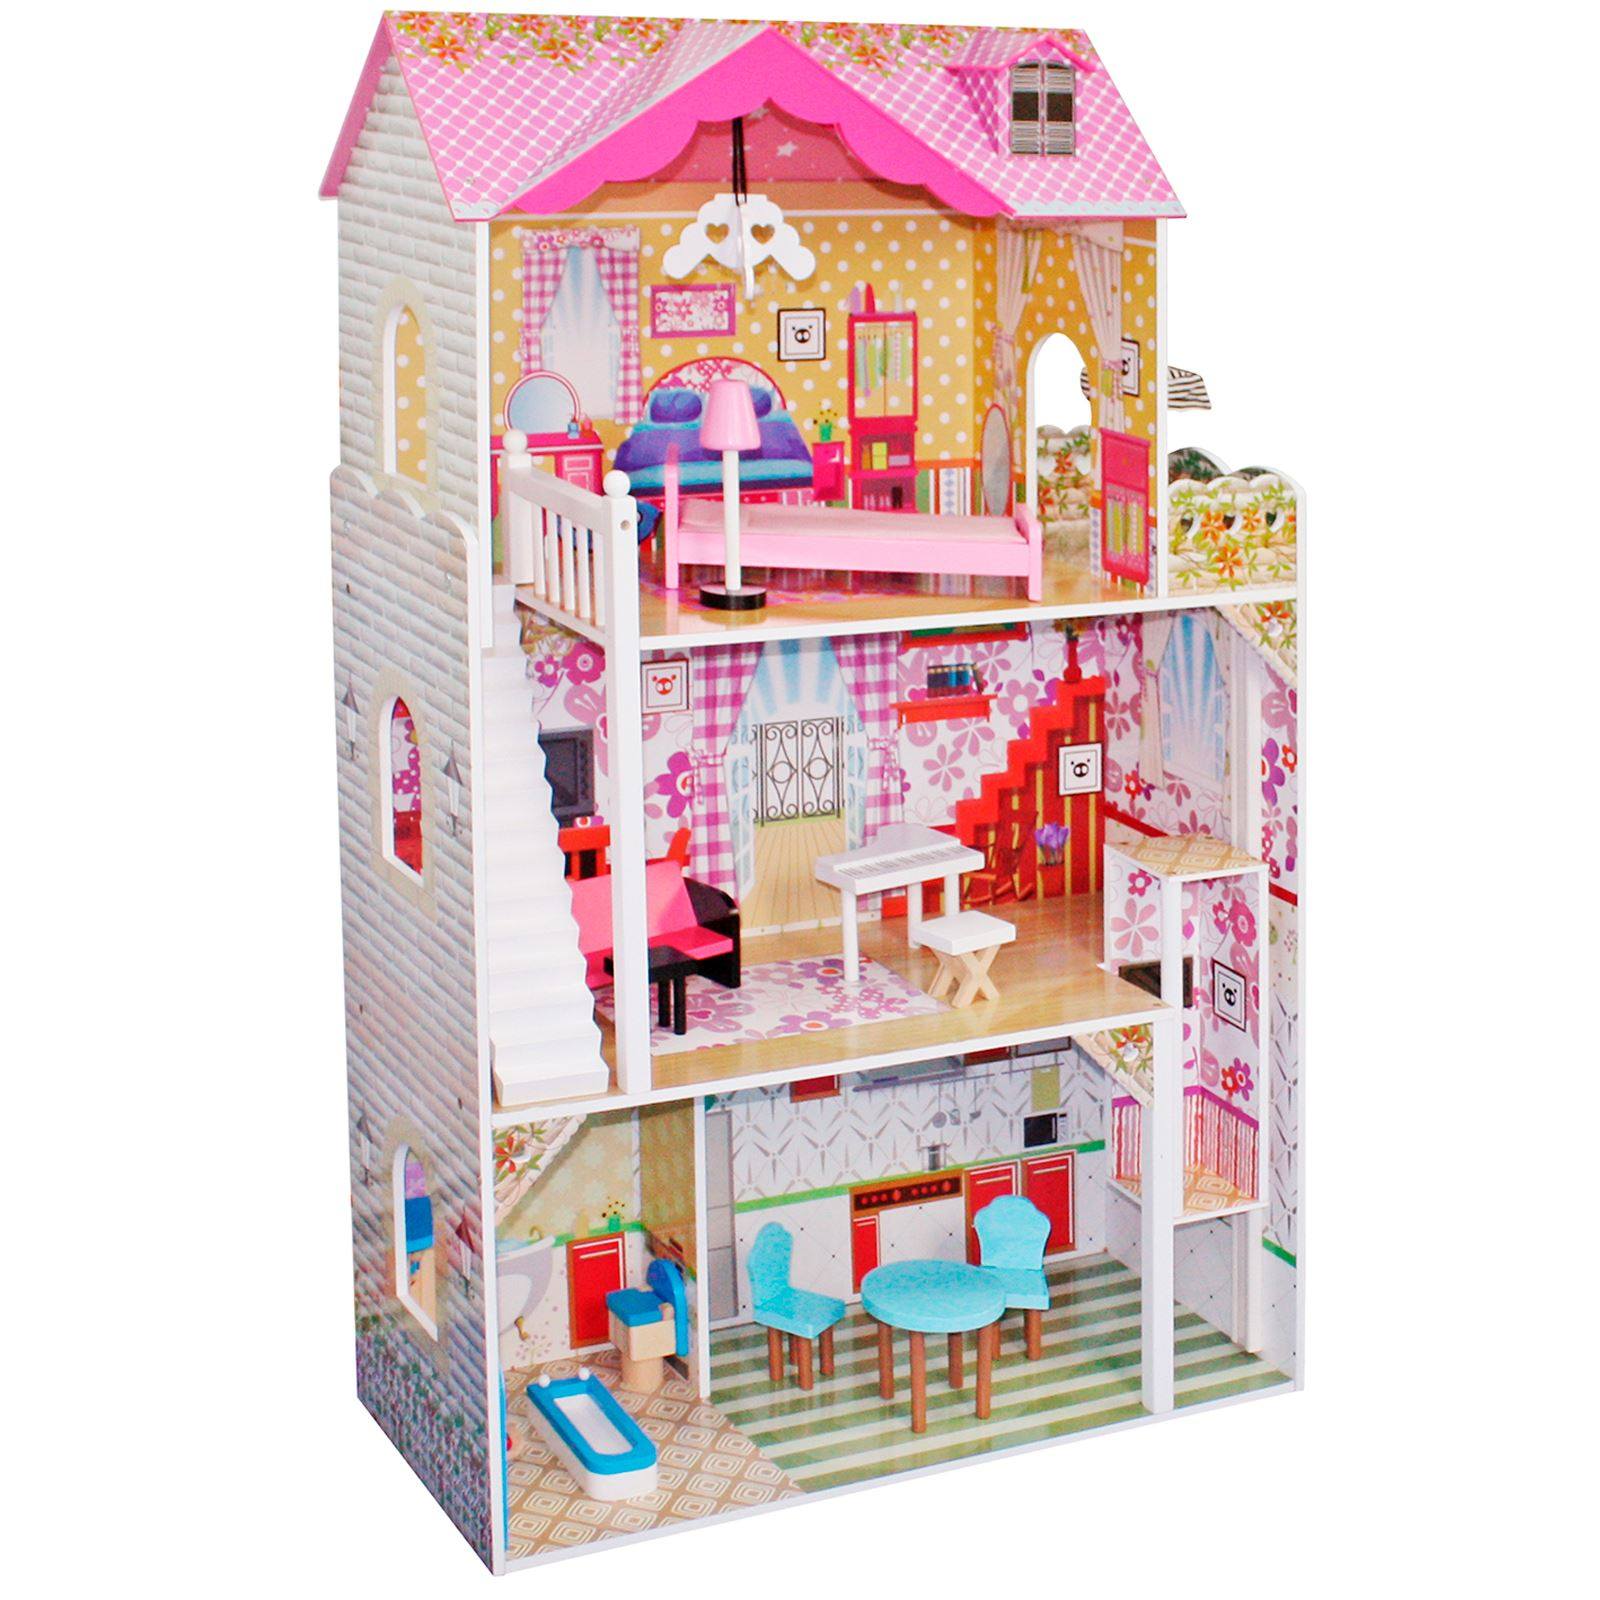 Boppi toy wooden girls dolls house 3 storey town barbie for Piani di casa pre progettati